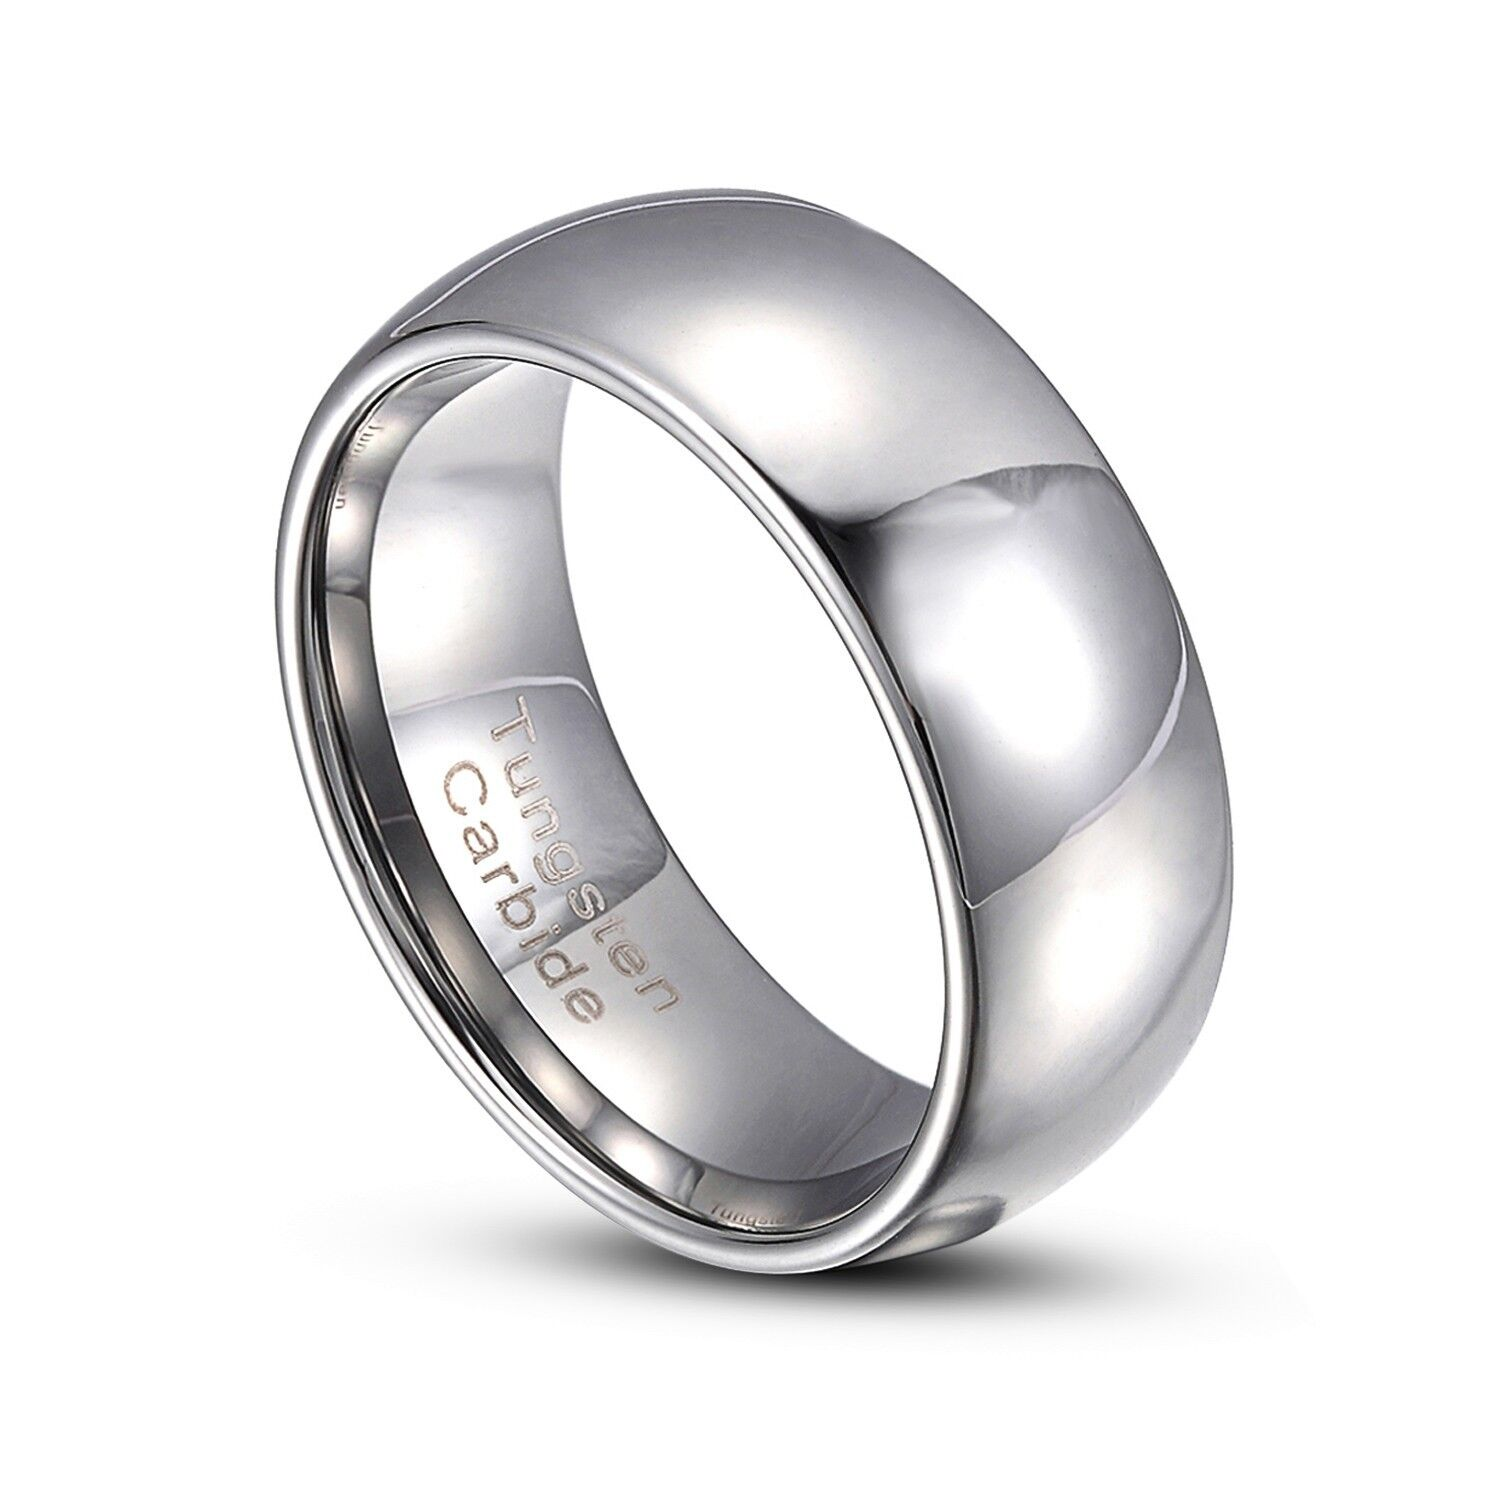 Silver Tungsten Carbide 7mm Comfort Fit Plain Rings Wedding Band Size